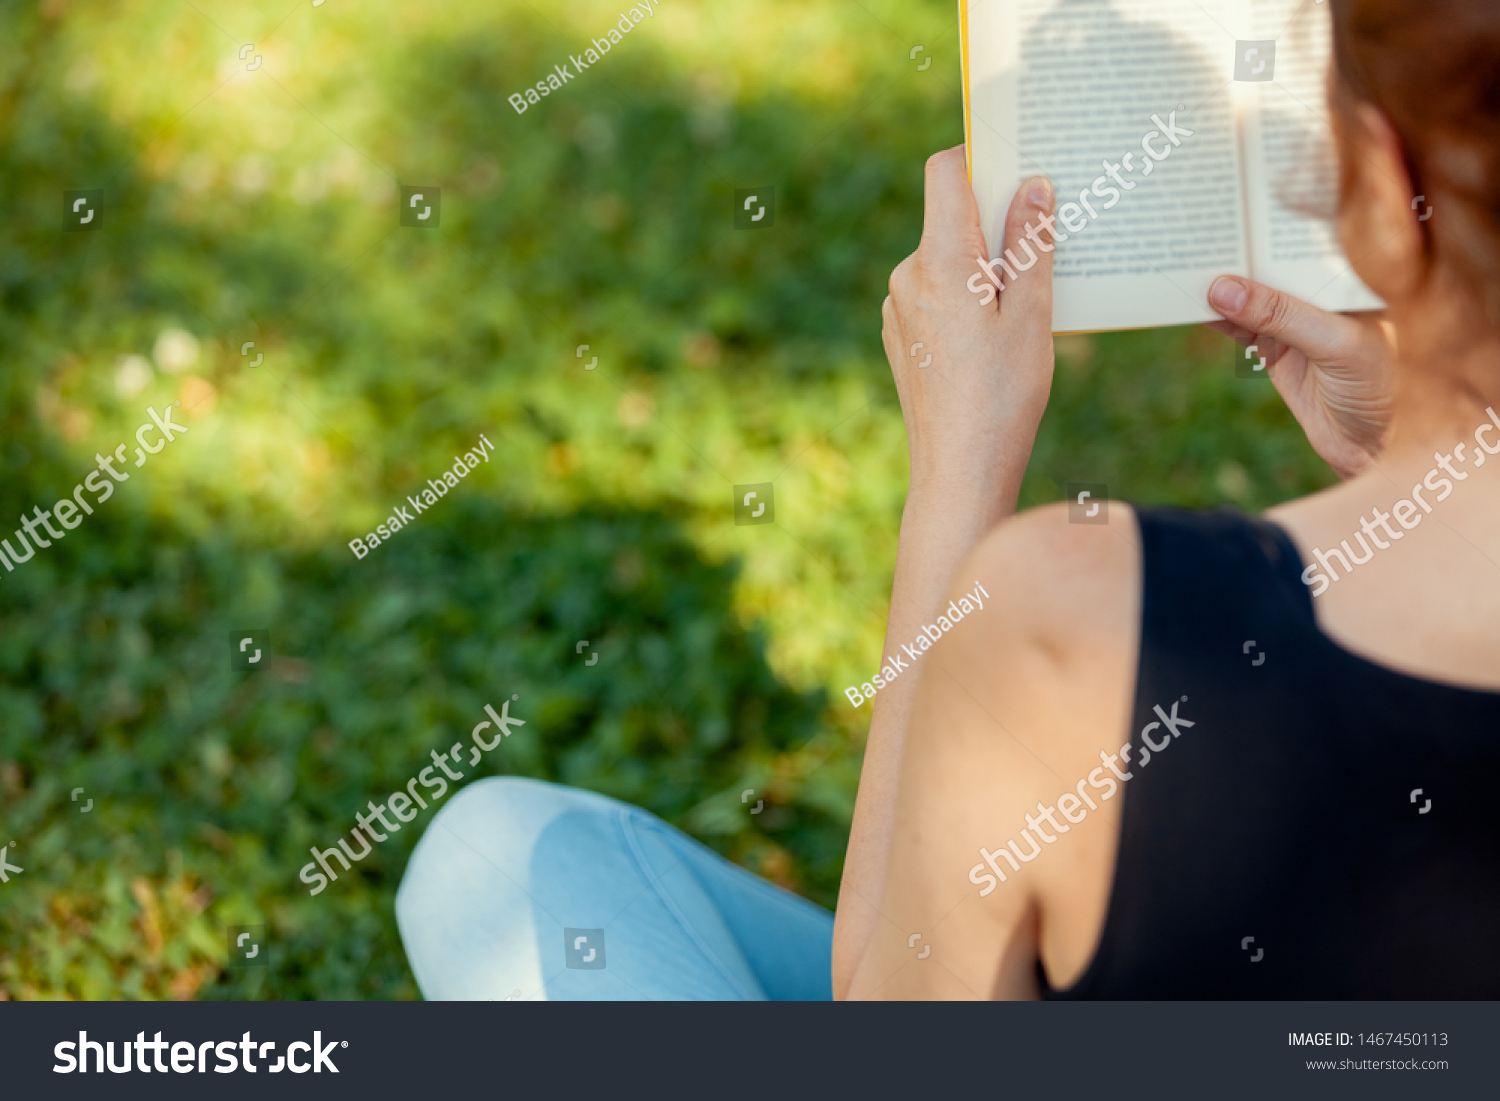 young woman reading and enjoying a book on the bench in public park. closeup backview photo of young woman reading book.  #1467450113